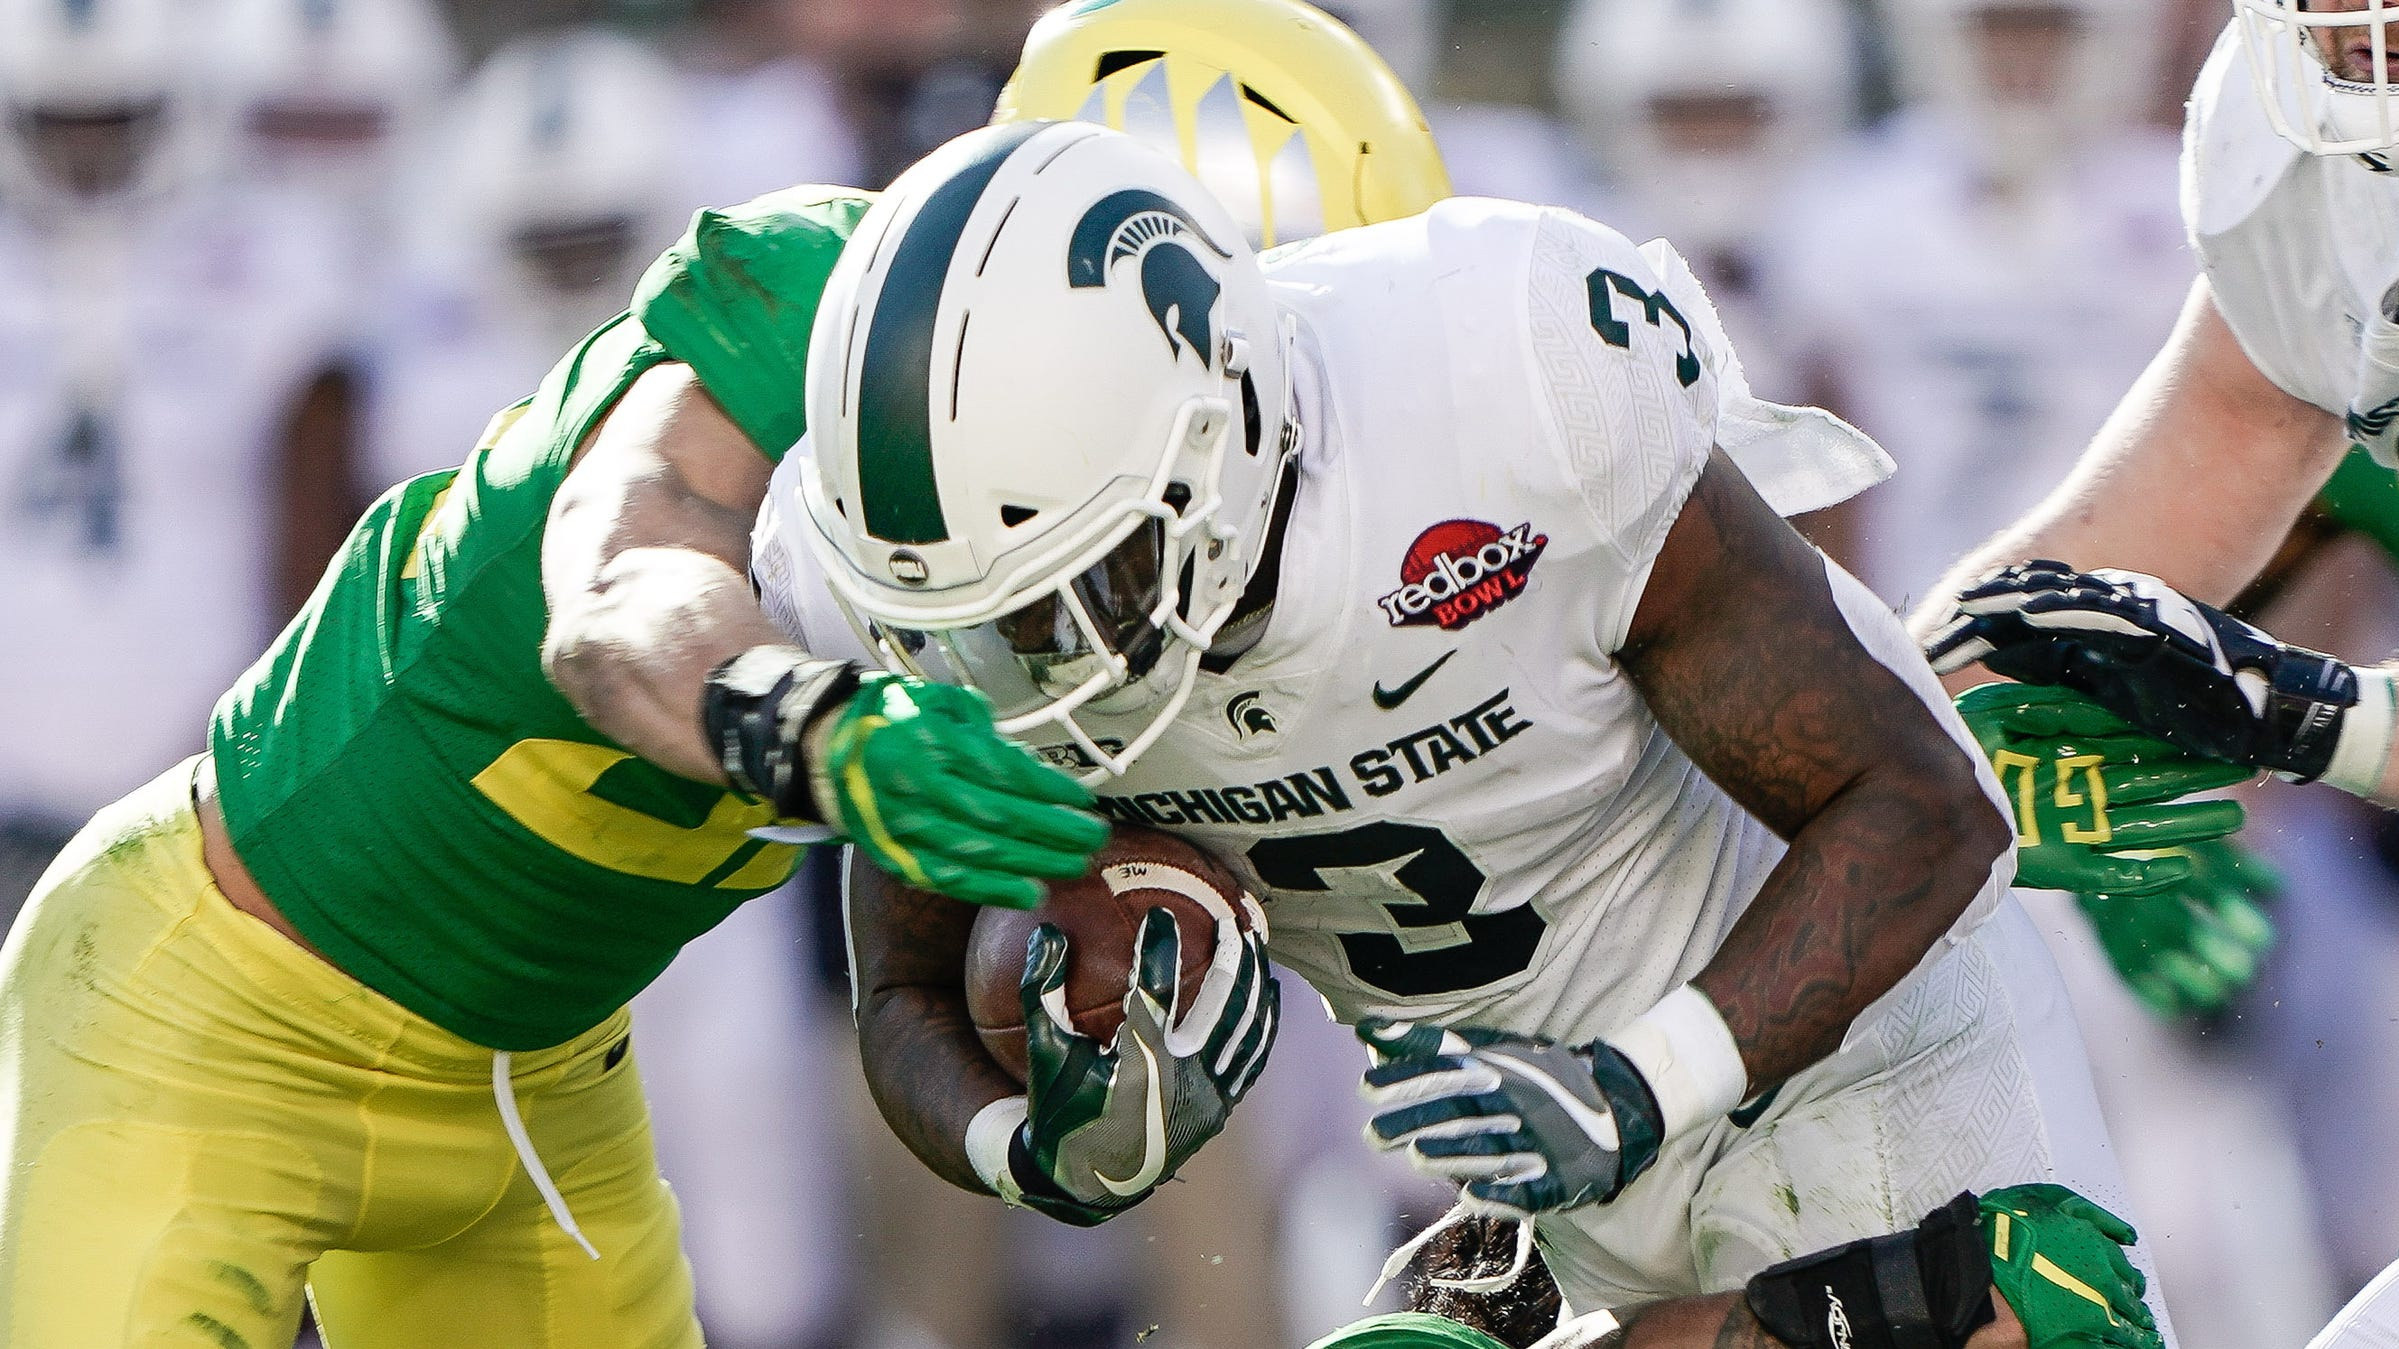 Former Michigan State football running back LJ Scott has withdrawn from the Reese's Senior Bowl due to an ankle injury.